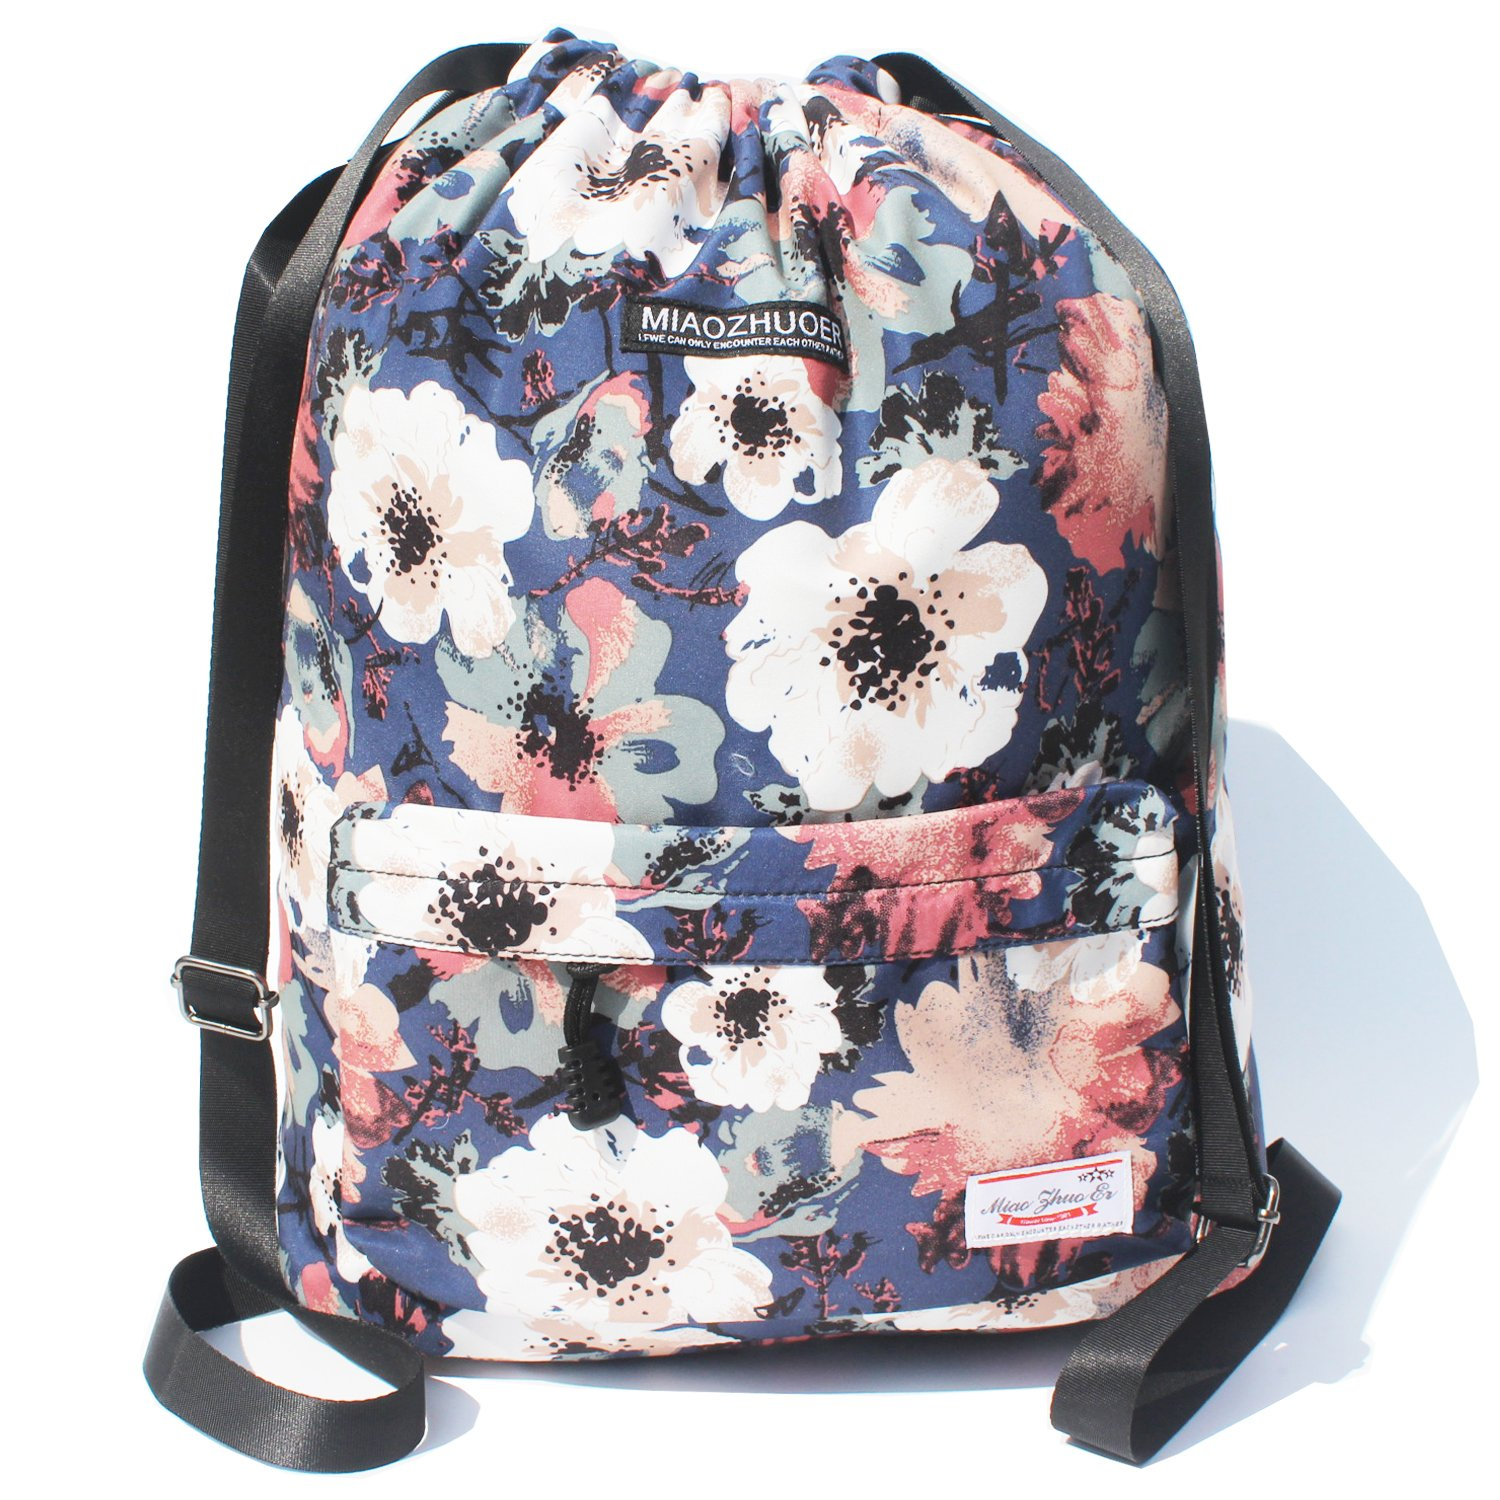 Drawstring Bag Original Floral Backpack for Travel School Gym Beach 2 Sizes